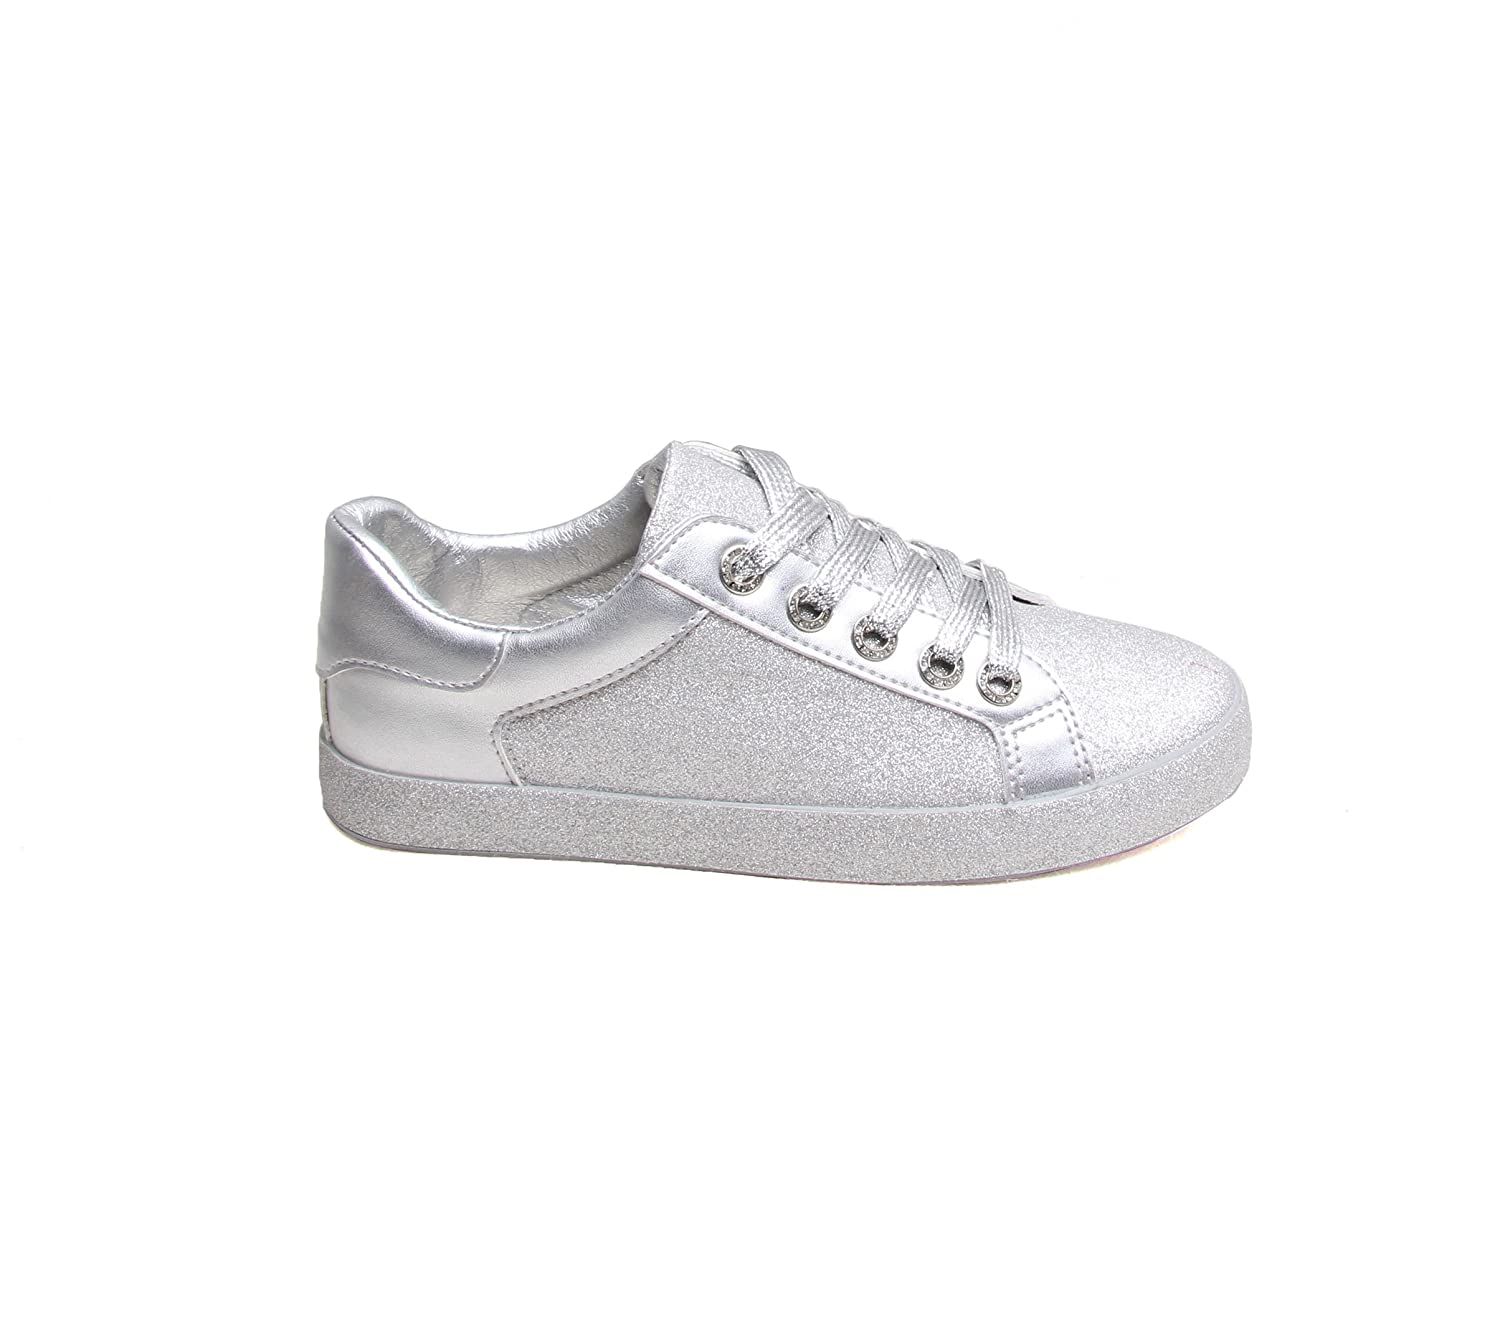 f43df344d43 GLOSSY Womens Ladies Glitter Sparkly Bling Fashion LACE UP Flat Casual Trainers  Pumps  Amazon.co.uk  Shoes   Bags